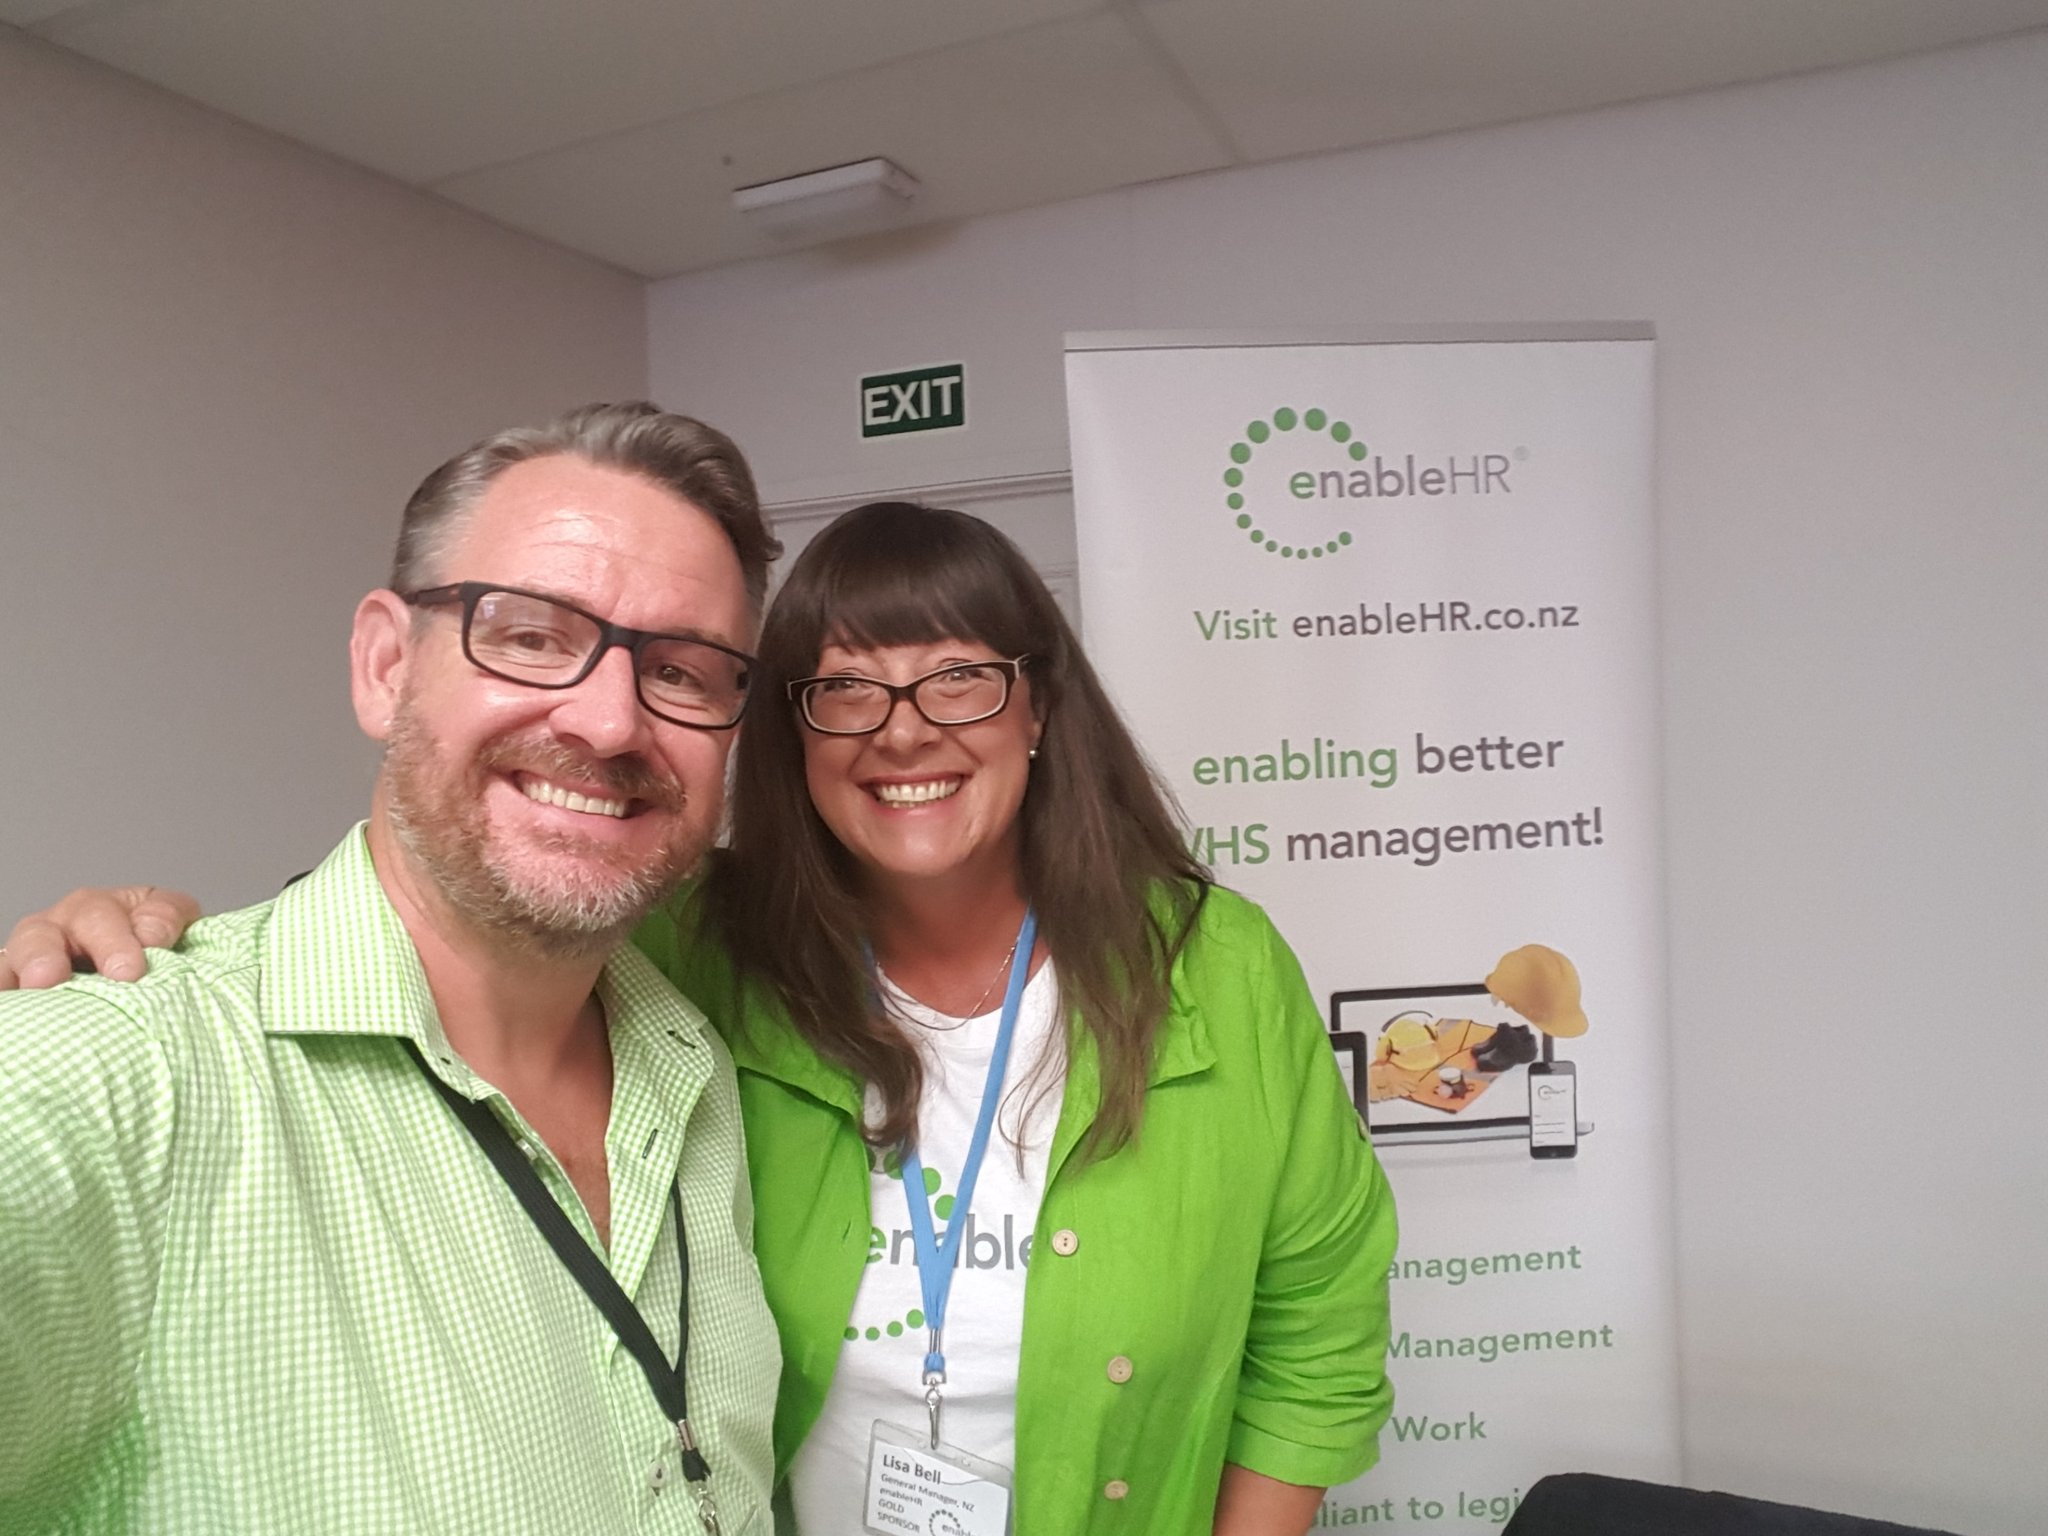 #hraconf17 @LisaBellHR  and I wearing 'enableHR green' a new trend for Client Partners and staff! https://t.co/SKFVQtxyG9